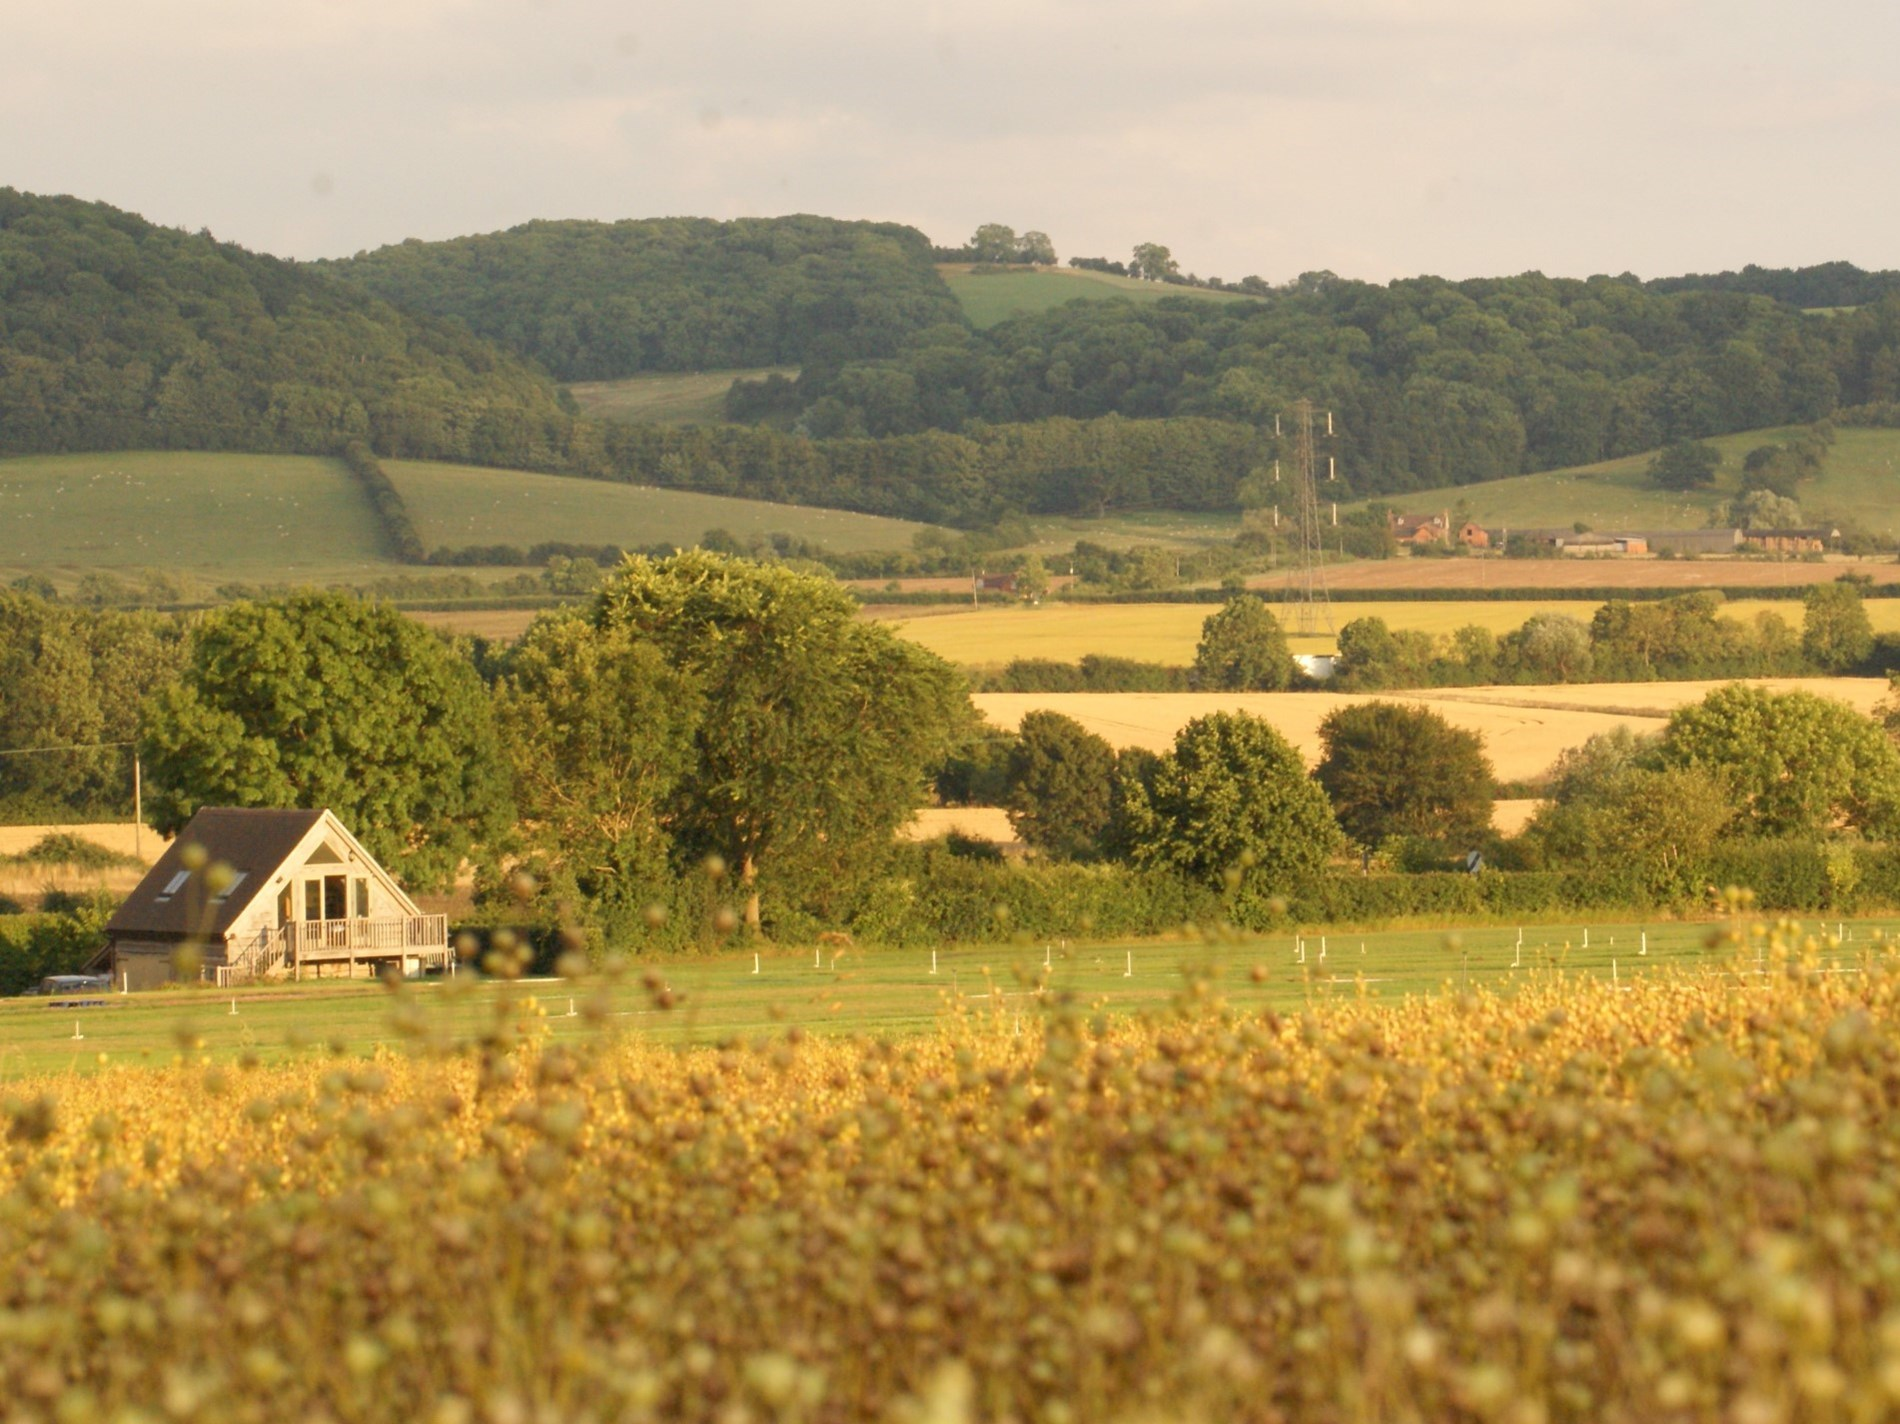 View towards the property from across the fields